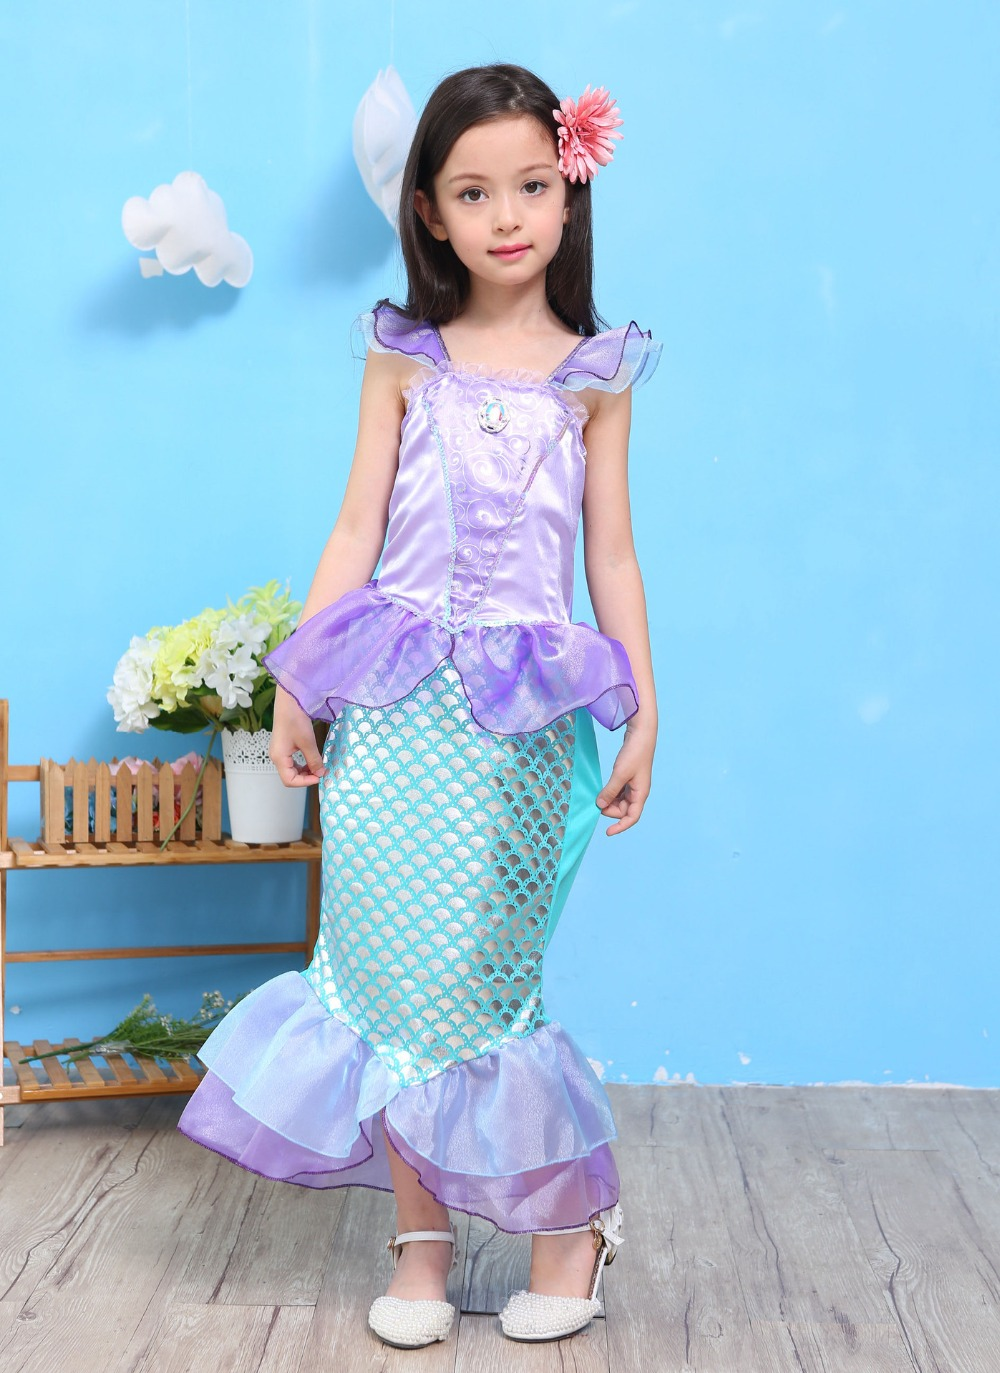 costumes for baby girls princess ariel dress The little Mermaid Ariel princess Cosplay Zeemeerminstaart costume mermaid dress